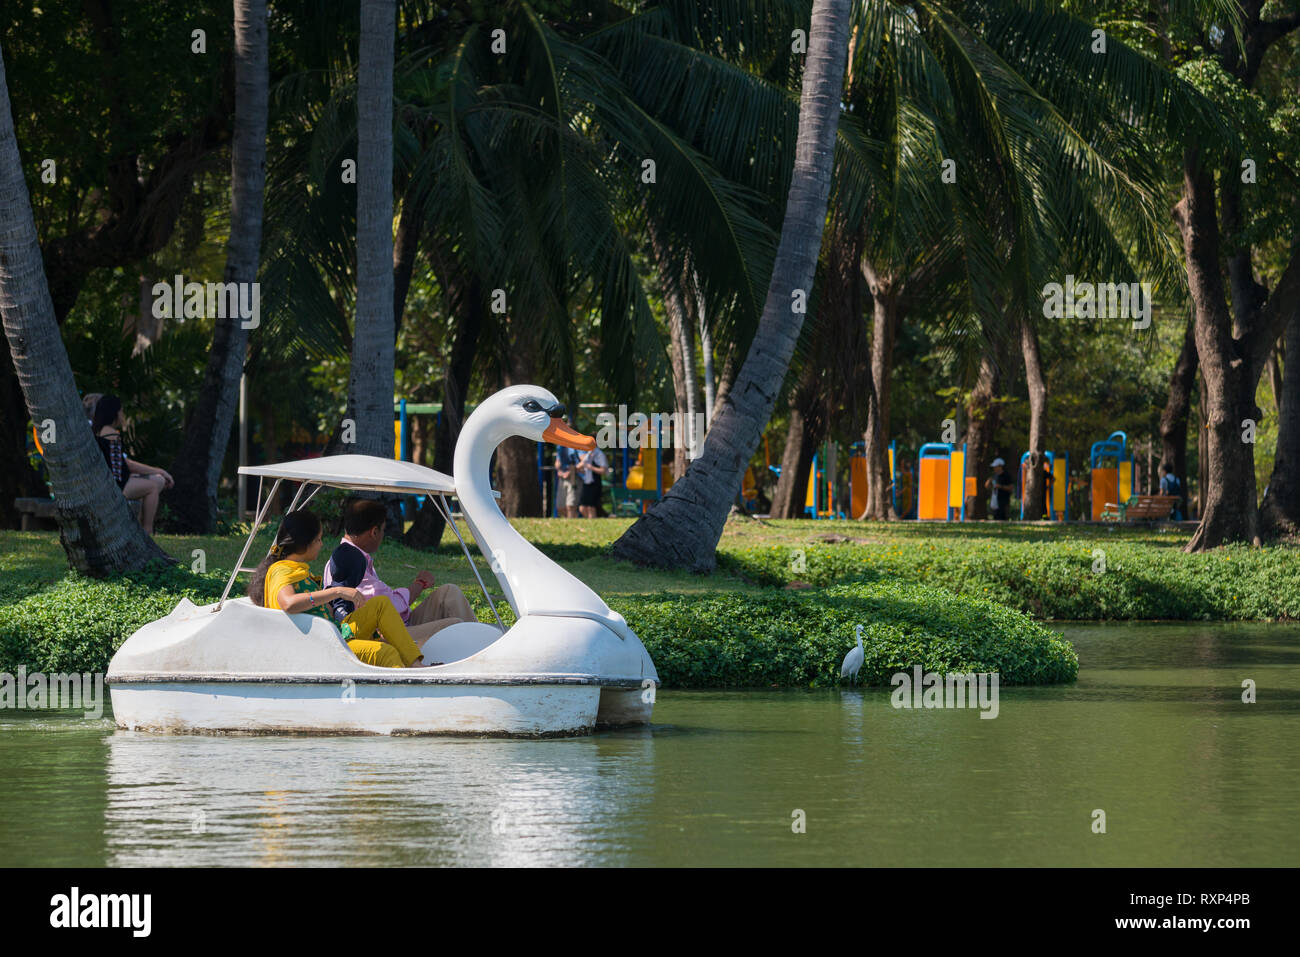 Tourists in swan pedal boat in Bangkok Lumpini park, Thailand Stock Photo